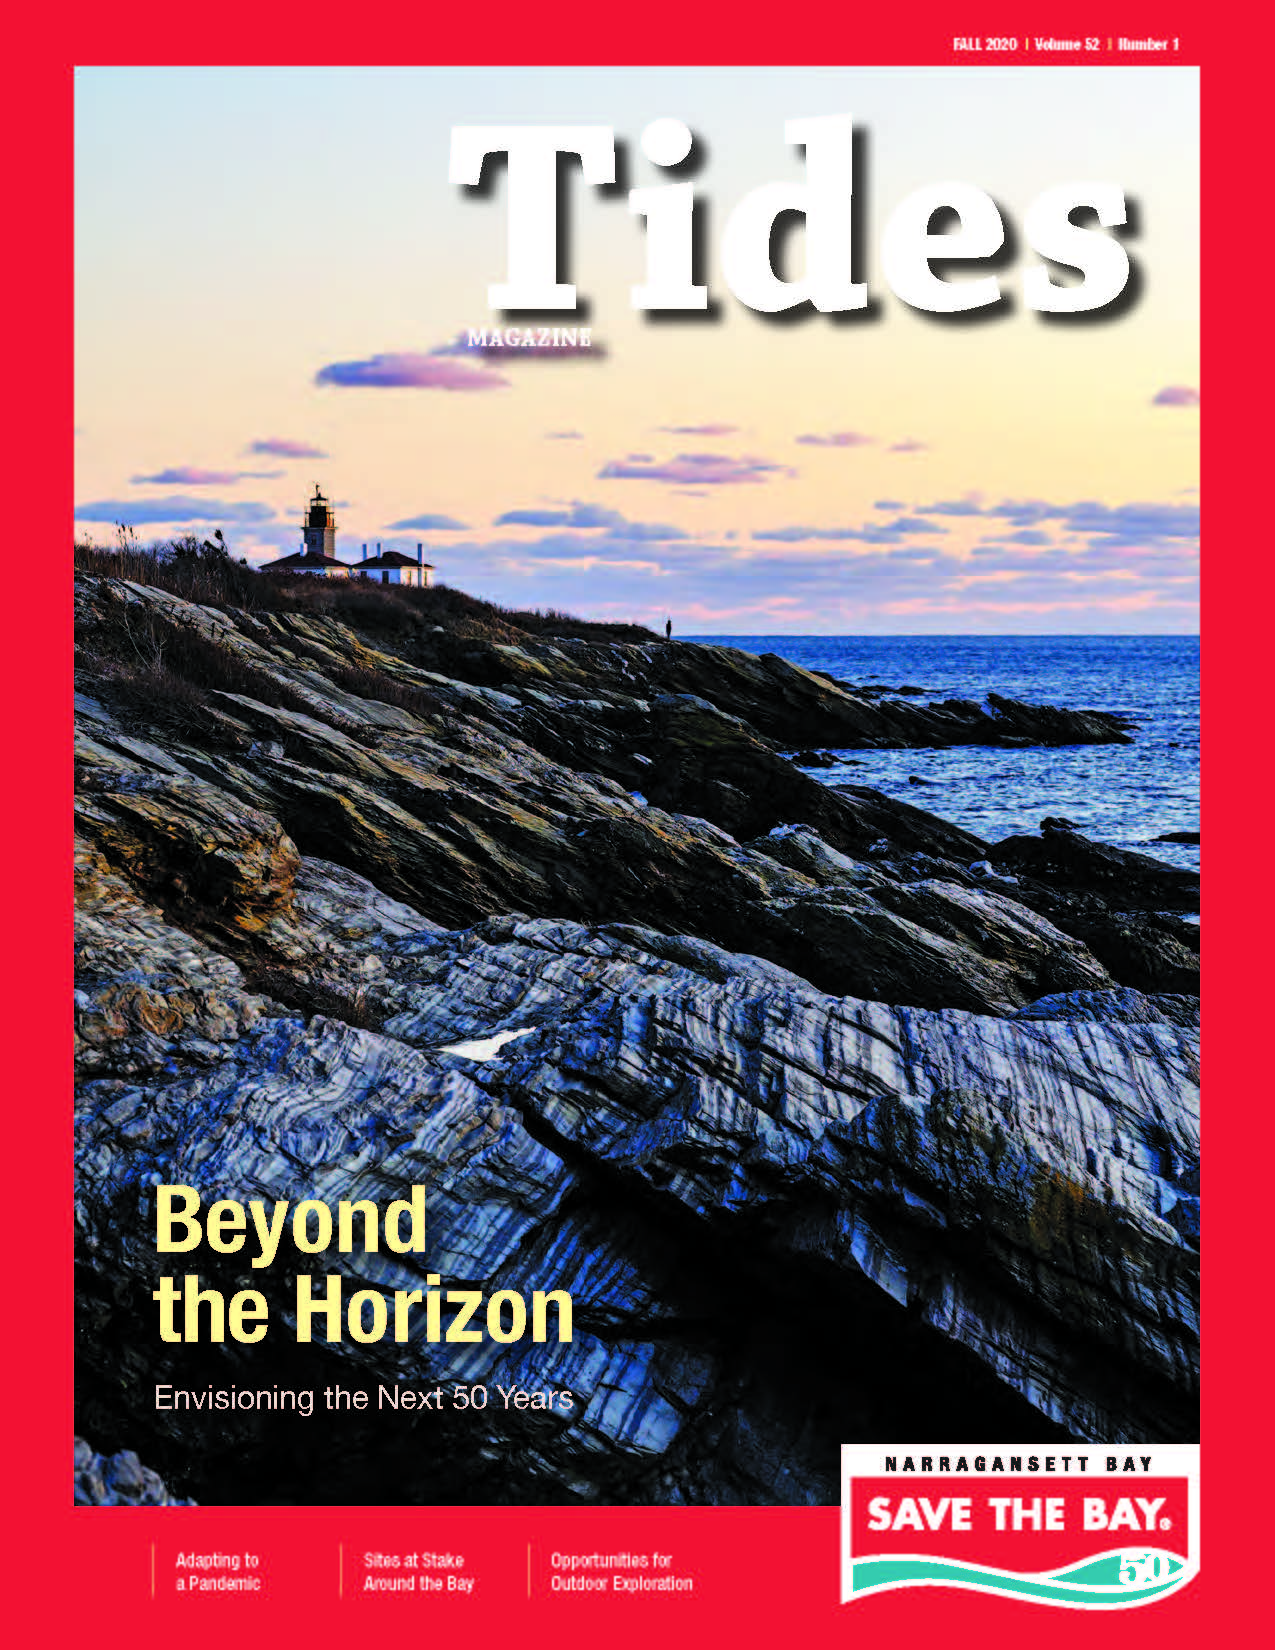 The cover of our 2020 Fall issue of Tides